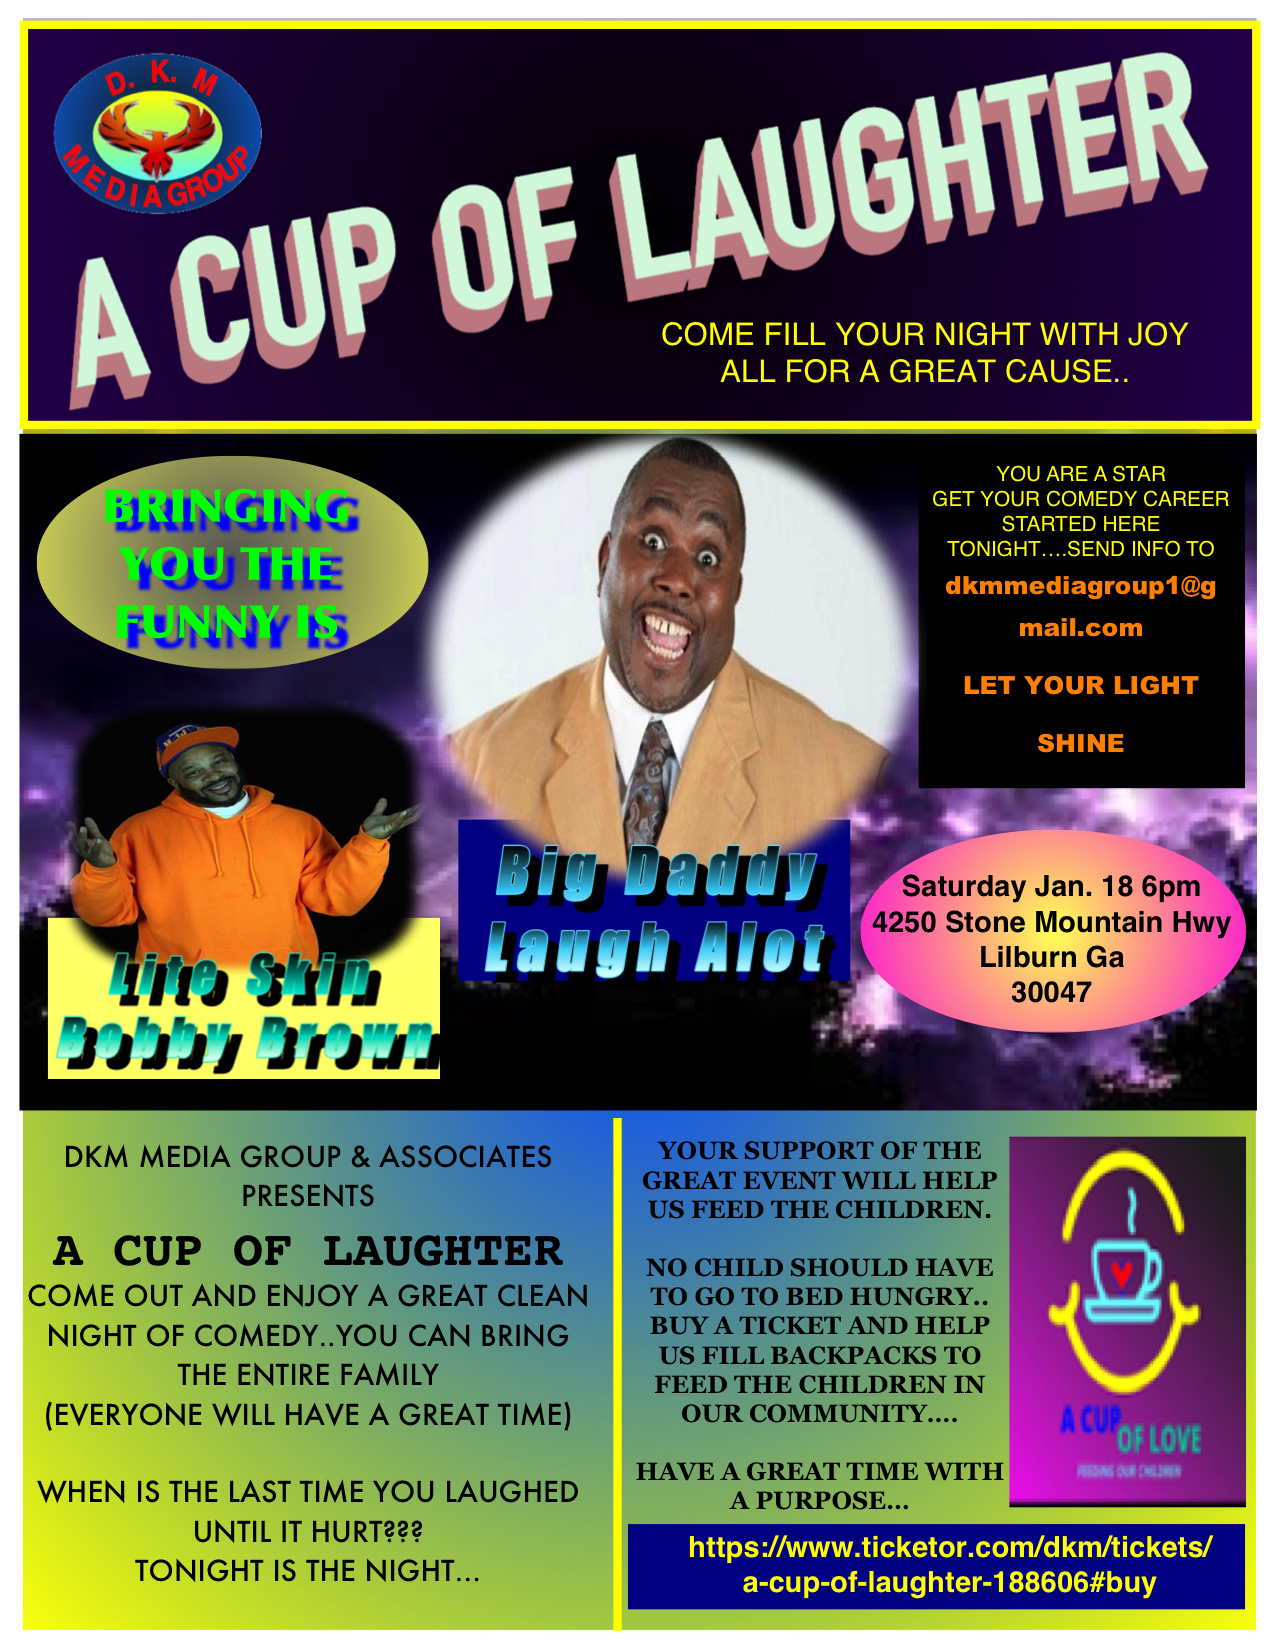 A Cup of Laughter COME FILL YOUR NIGHT WITH JOY  ALL FOR A GREAT CAUSE.. on Jan 18, 18:00@DKM Media Group & Associates - Buy tickets and Get information on DKM MEDIA & ASSOCIATES